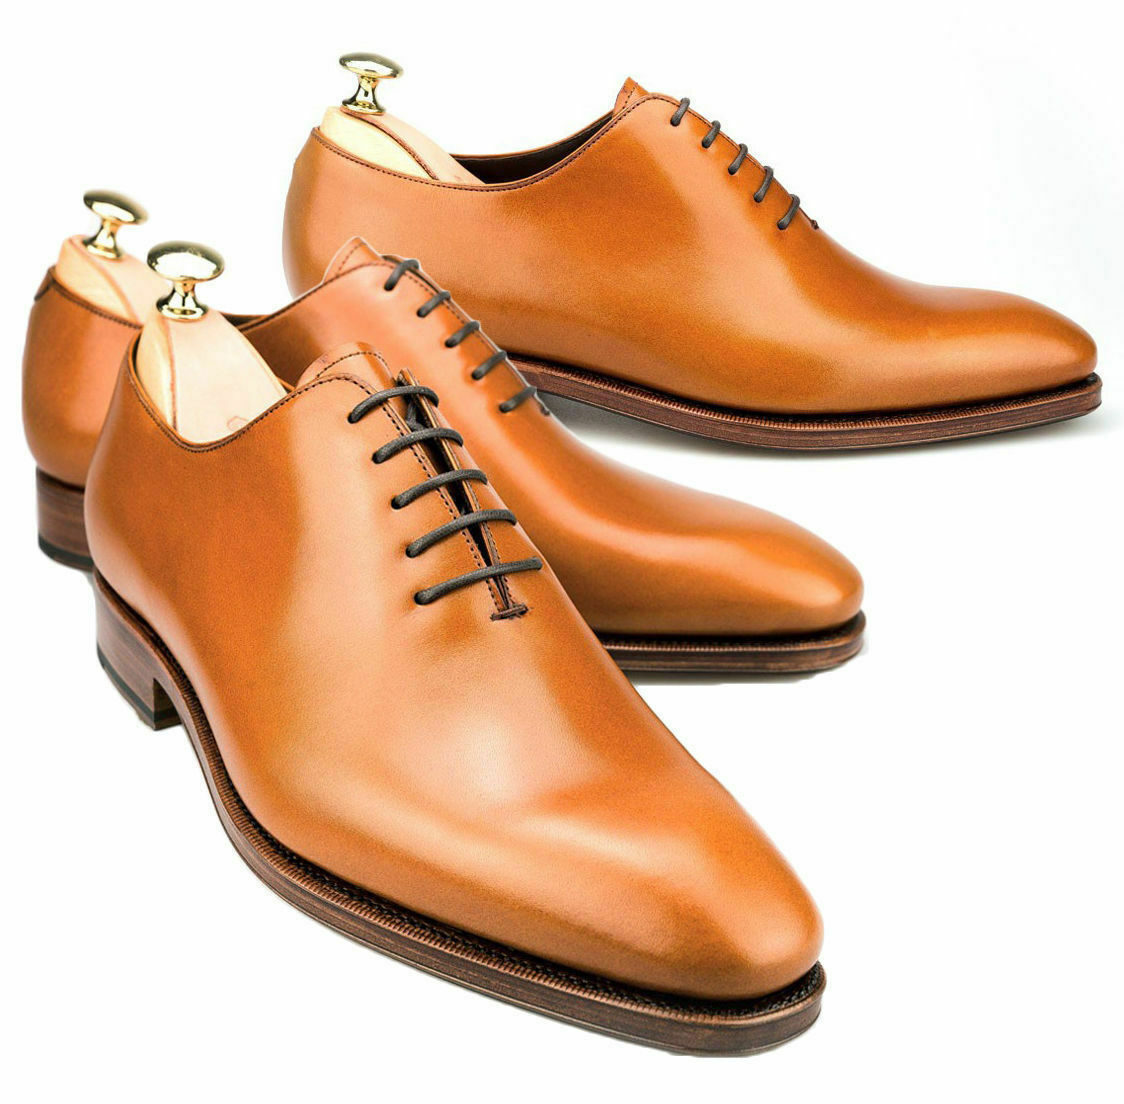 Mens Handmade shoes Oxford Whole-cut Tan Office Business Formal Dress Wear Boots